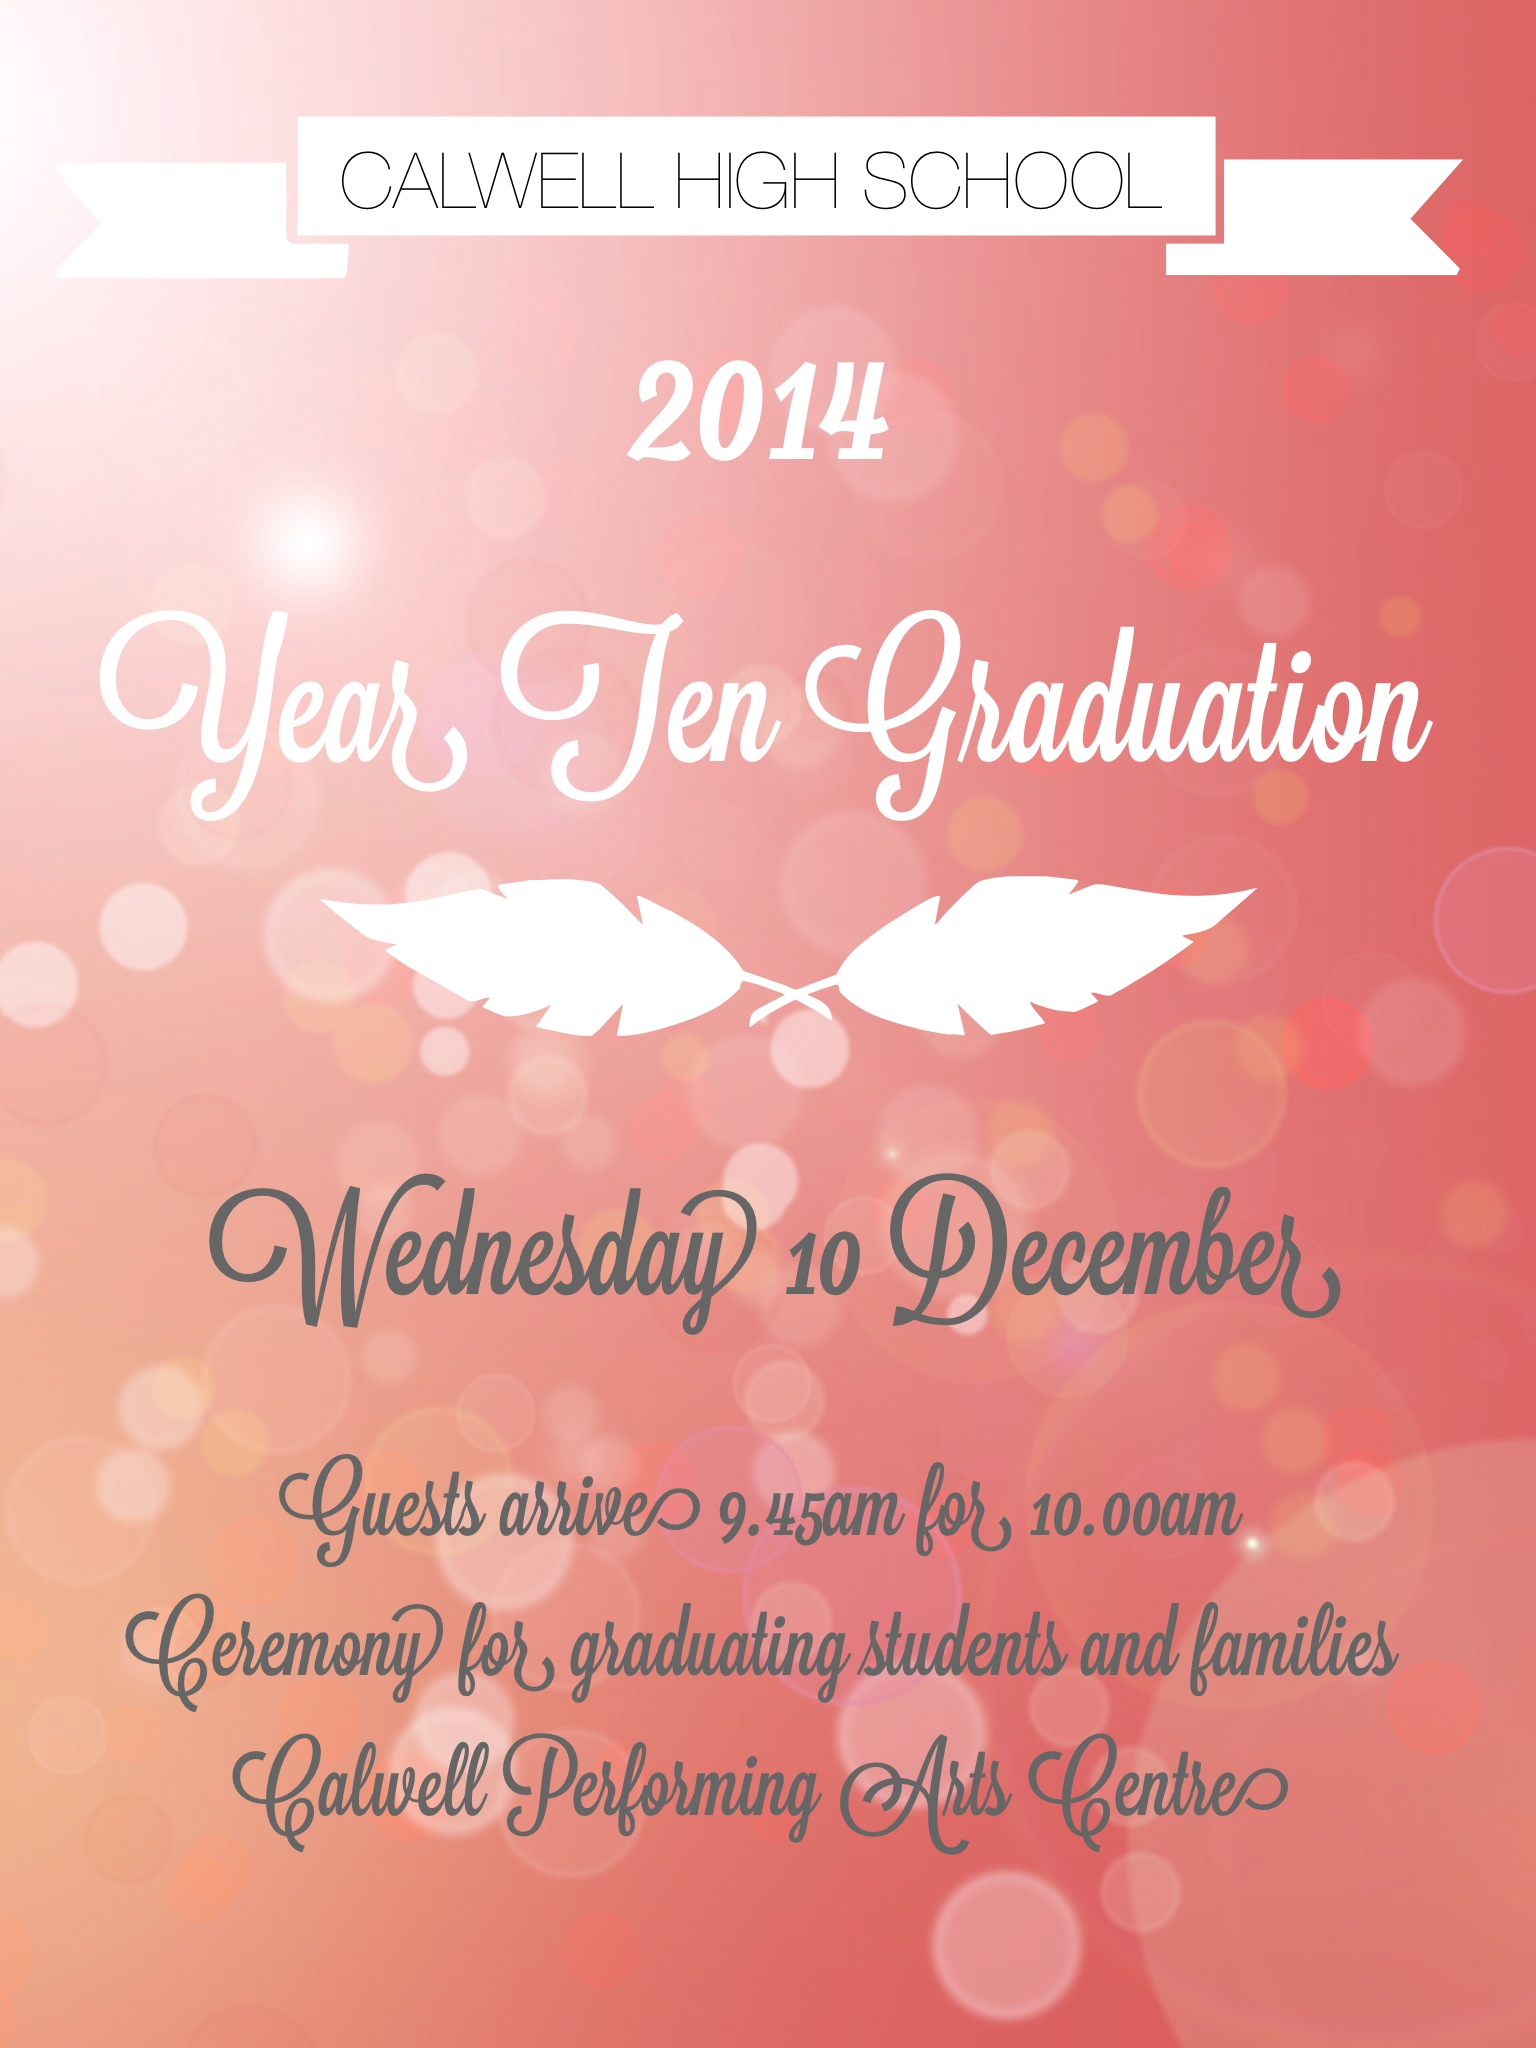 2014 Year Ten Graduation Wednesday 10 December 9.45am